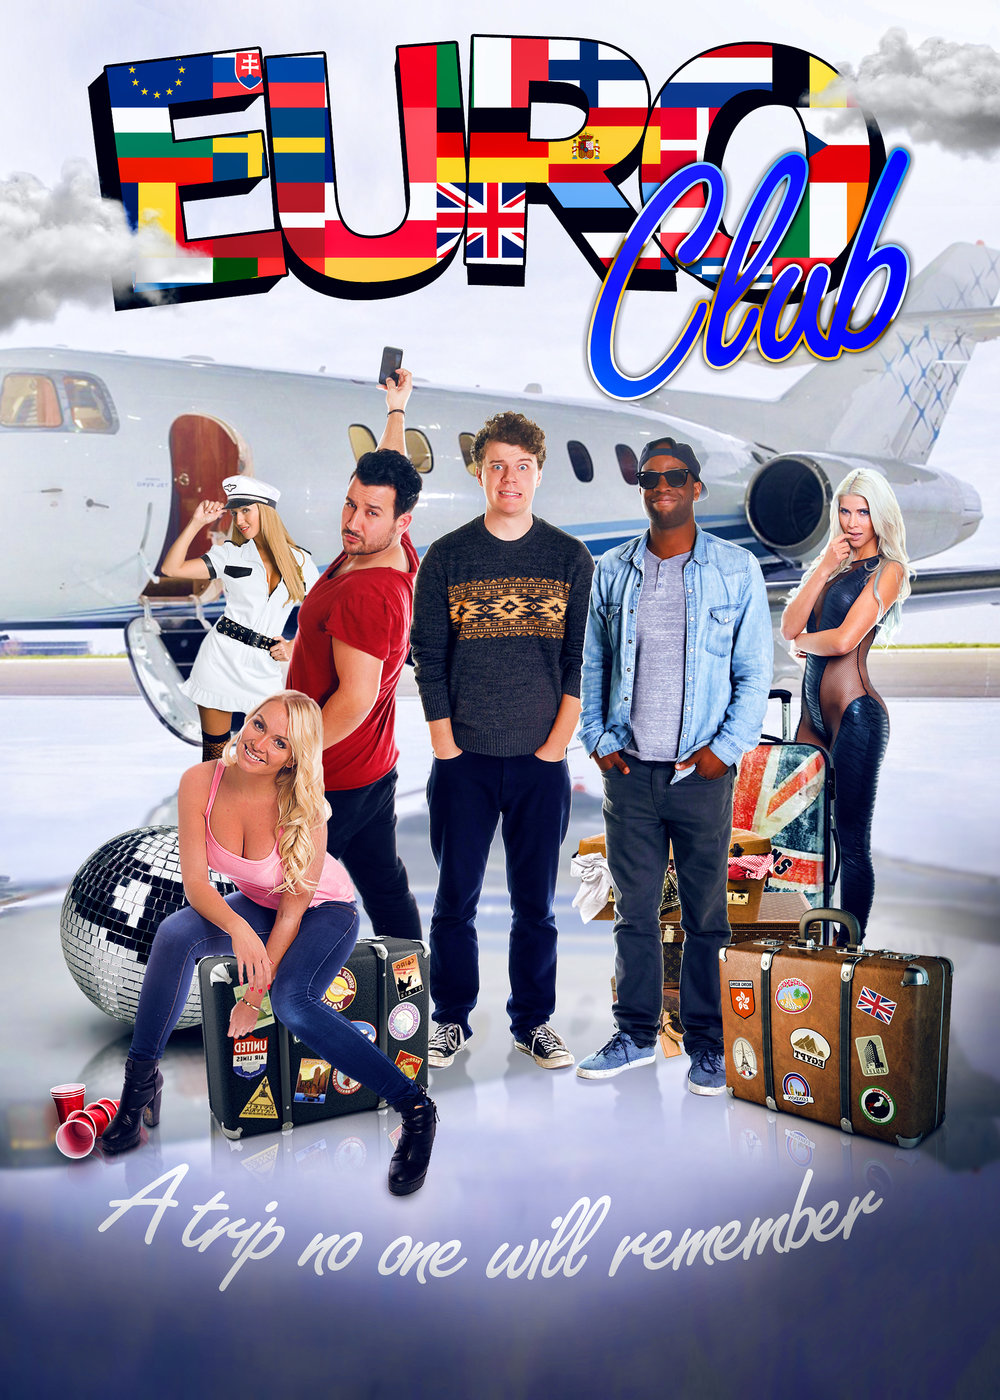 Euro Club   Three American guys who perpetually strike out with the ladies travel to Europe to embark on an adventure filled with drinking, dancing, &partying while dodging gypsies, gangsters, &hooligans to get to the world's hottest club.